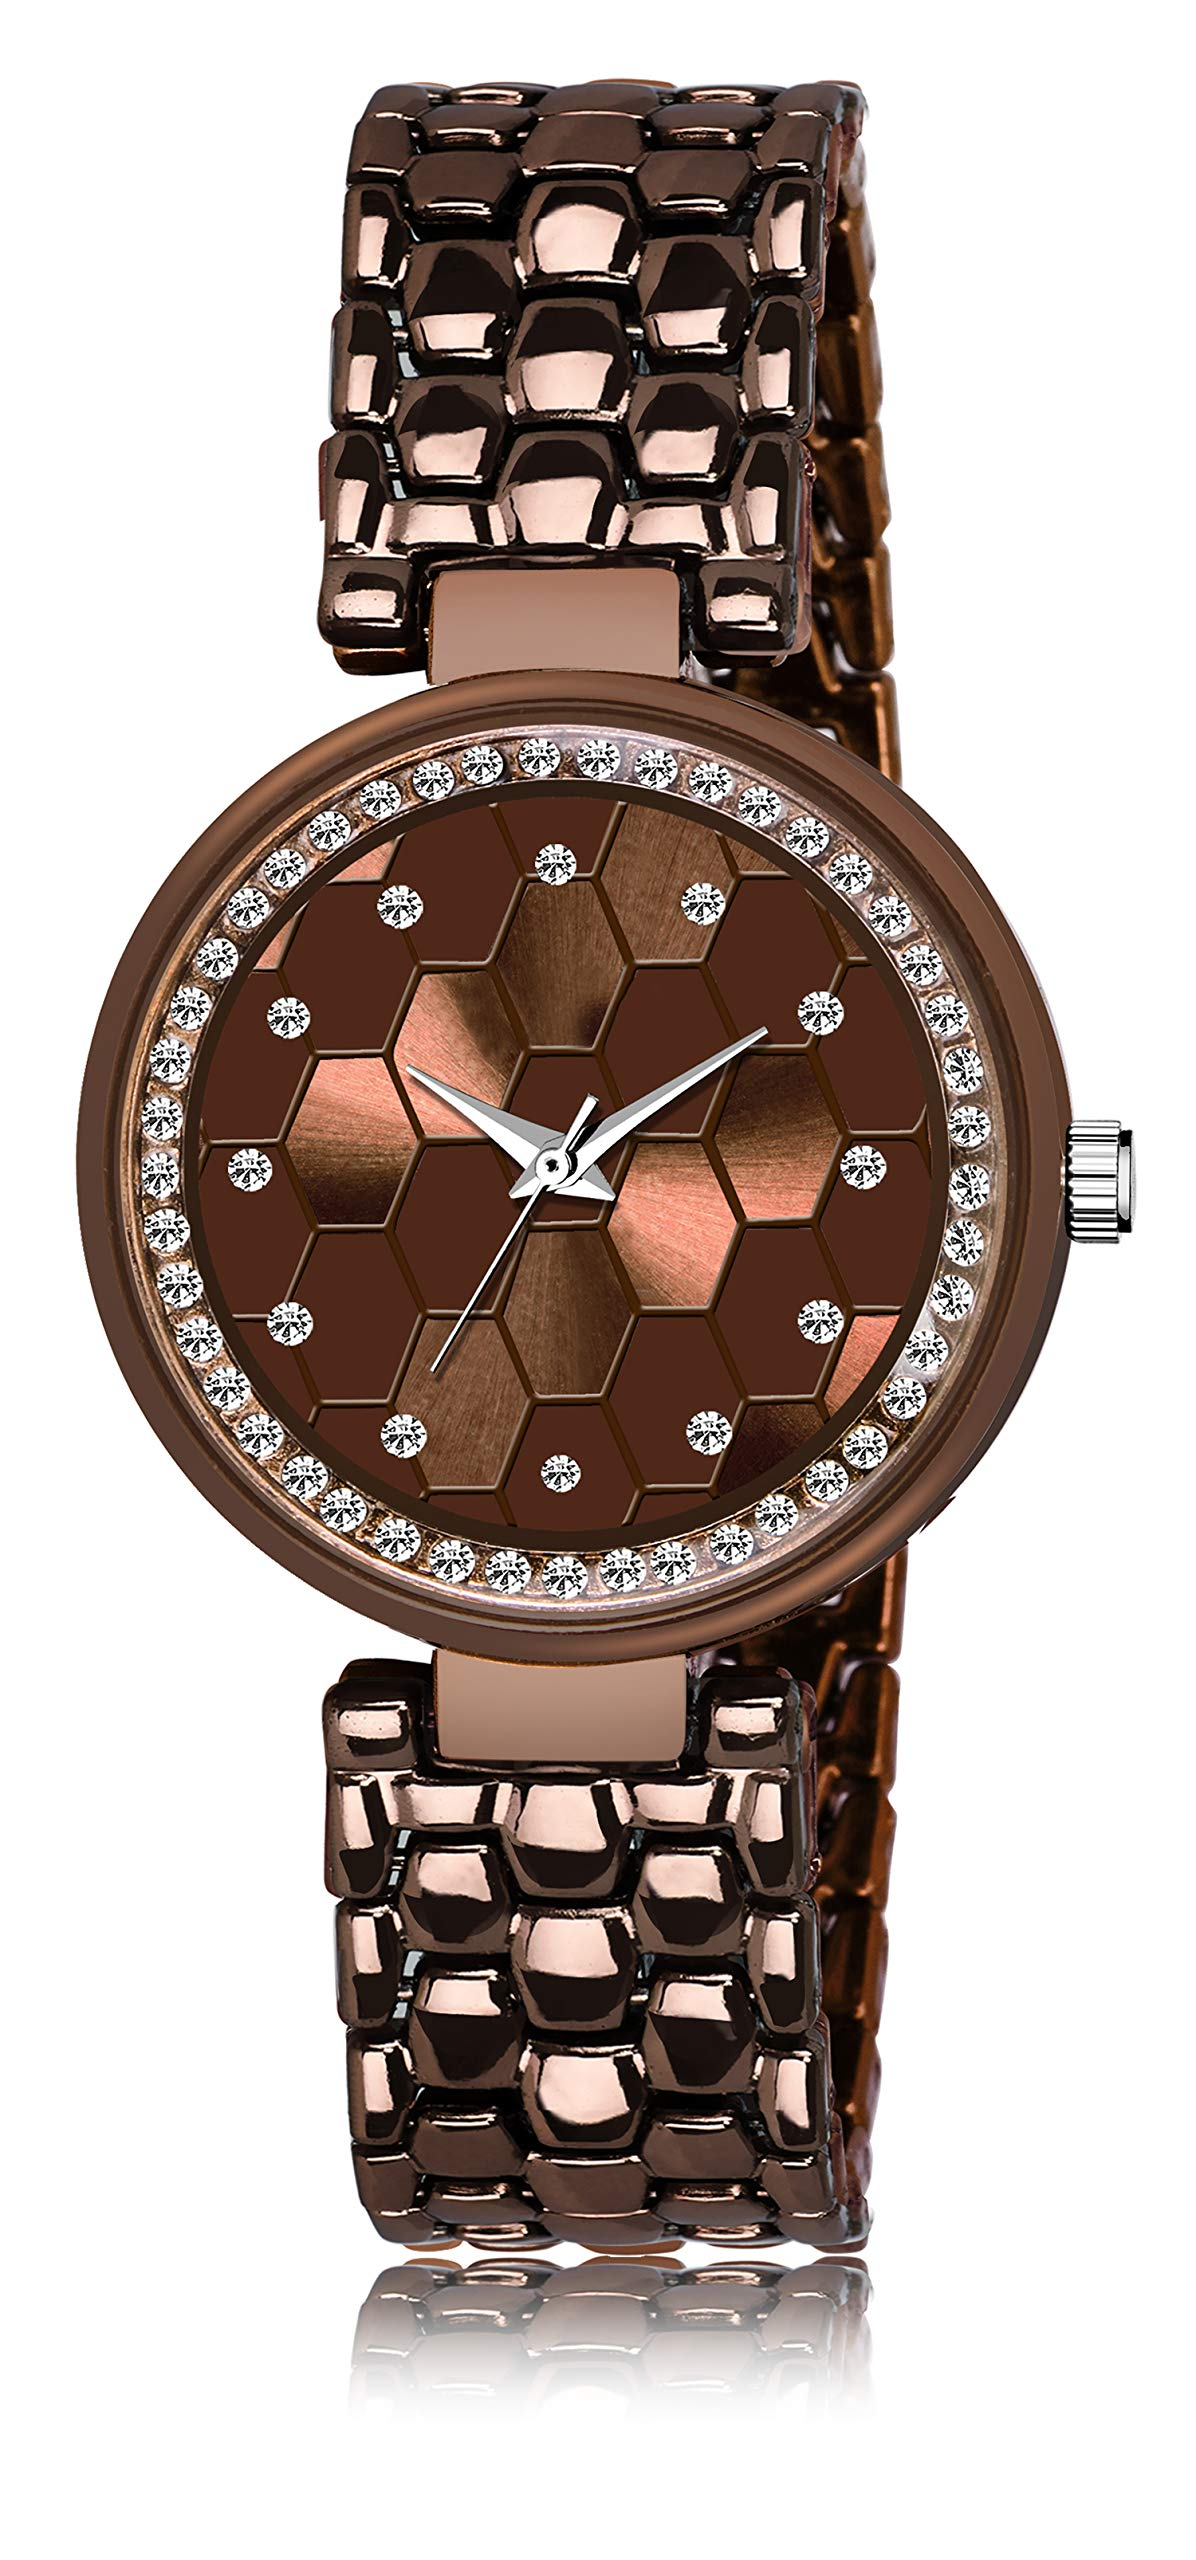 LegendDeal Analogue Brown Watches for Girl's & Women's (B07VSPBFF6) Amazon Price History, Amazon Price Tracker